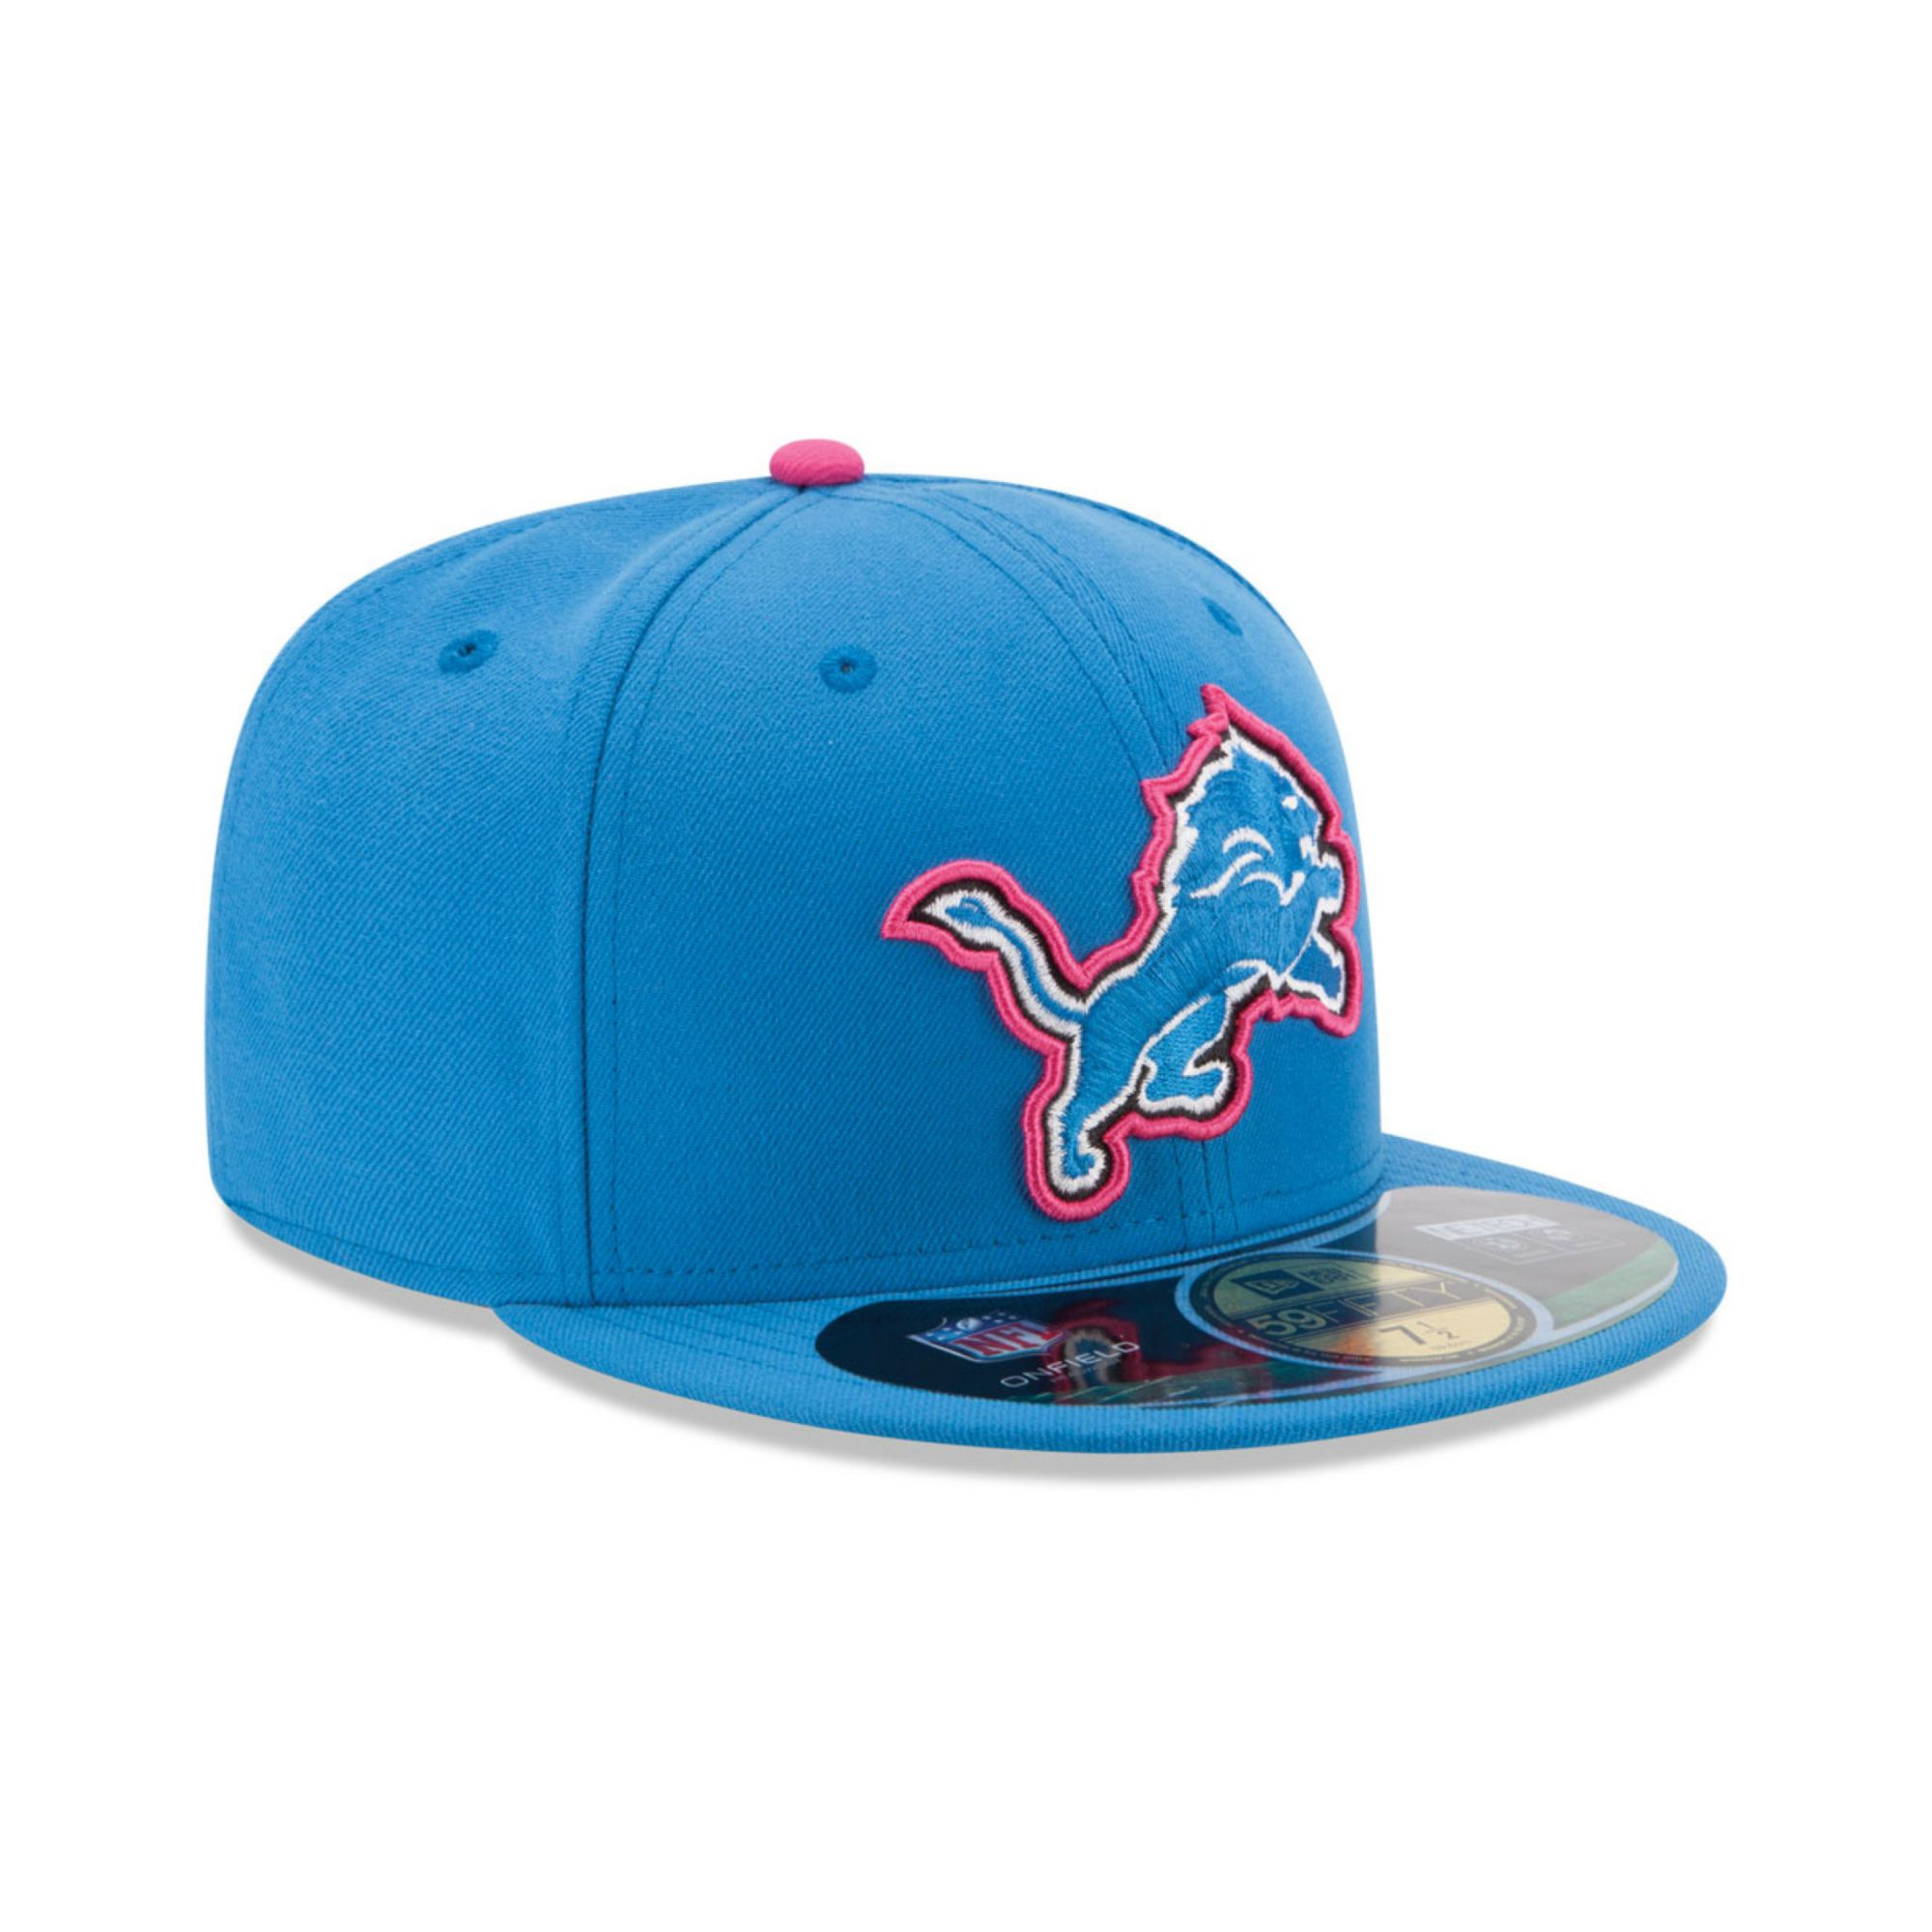 670c2b8c9 ... hat gray e2ea3 e7f4e  canada lyst ktz detroit lions breast cancer  awareness 59fifty cap in blue 42354 671a0